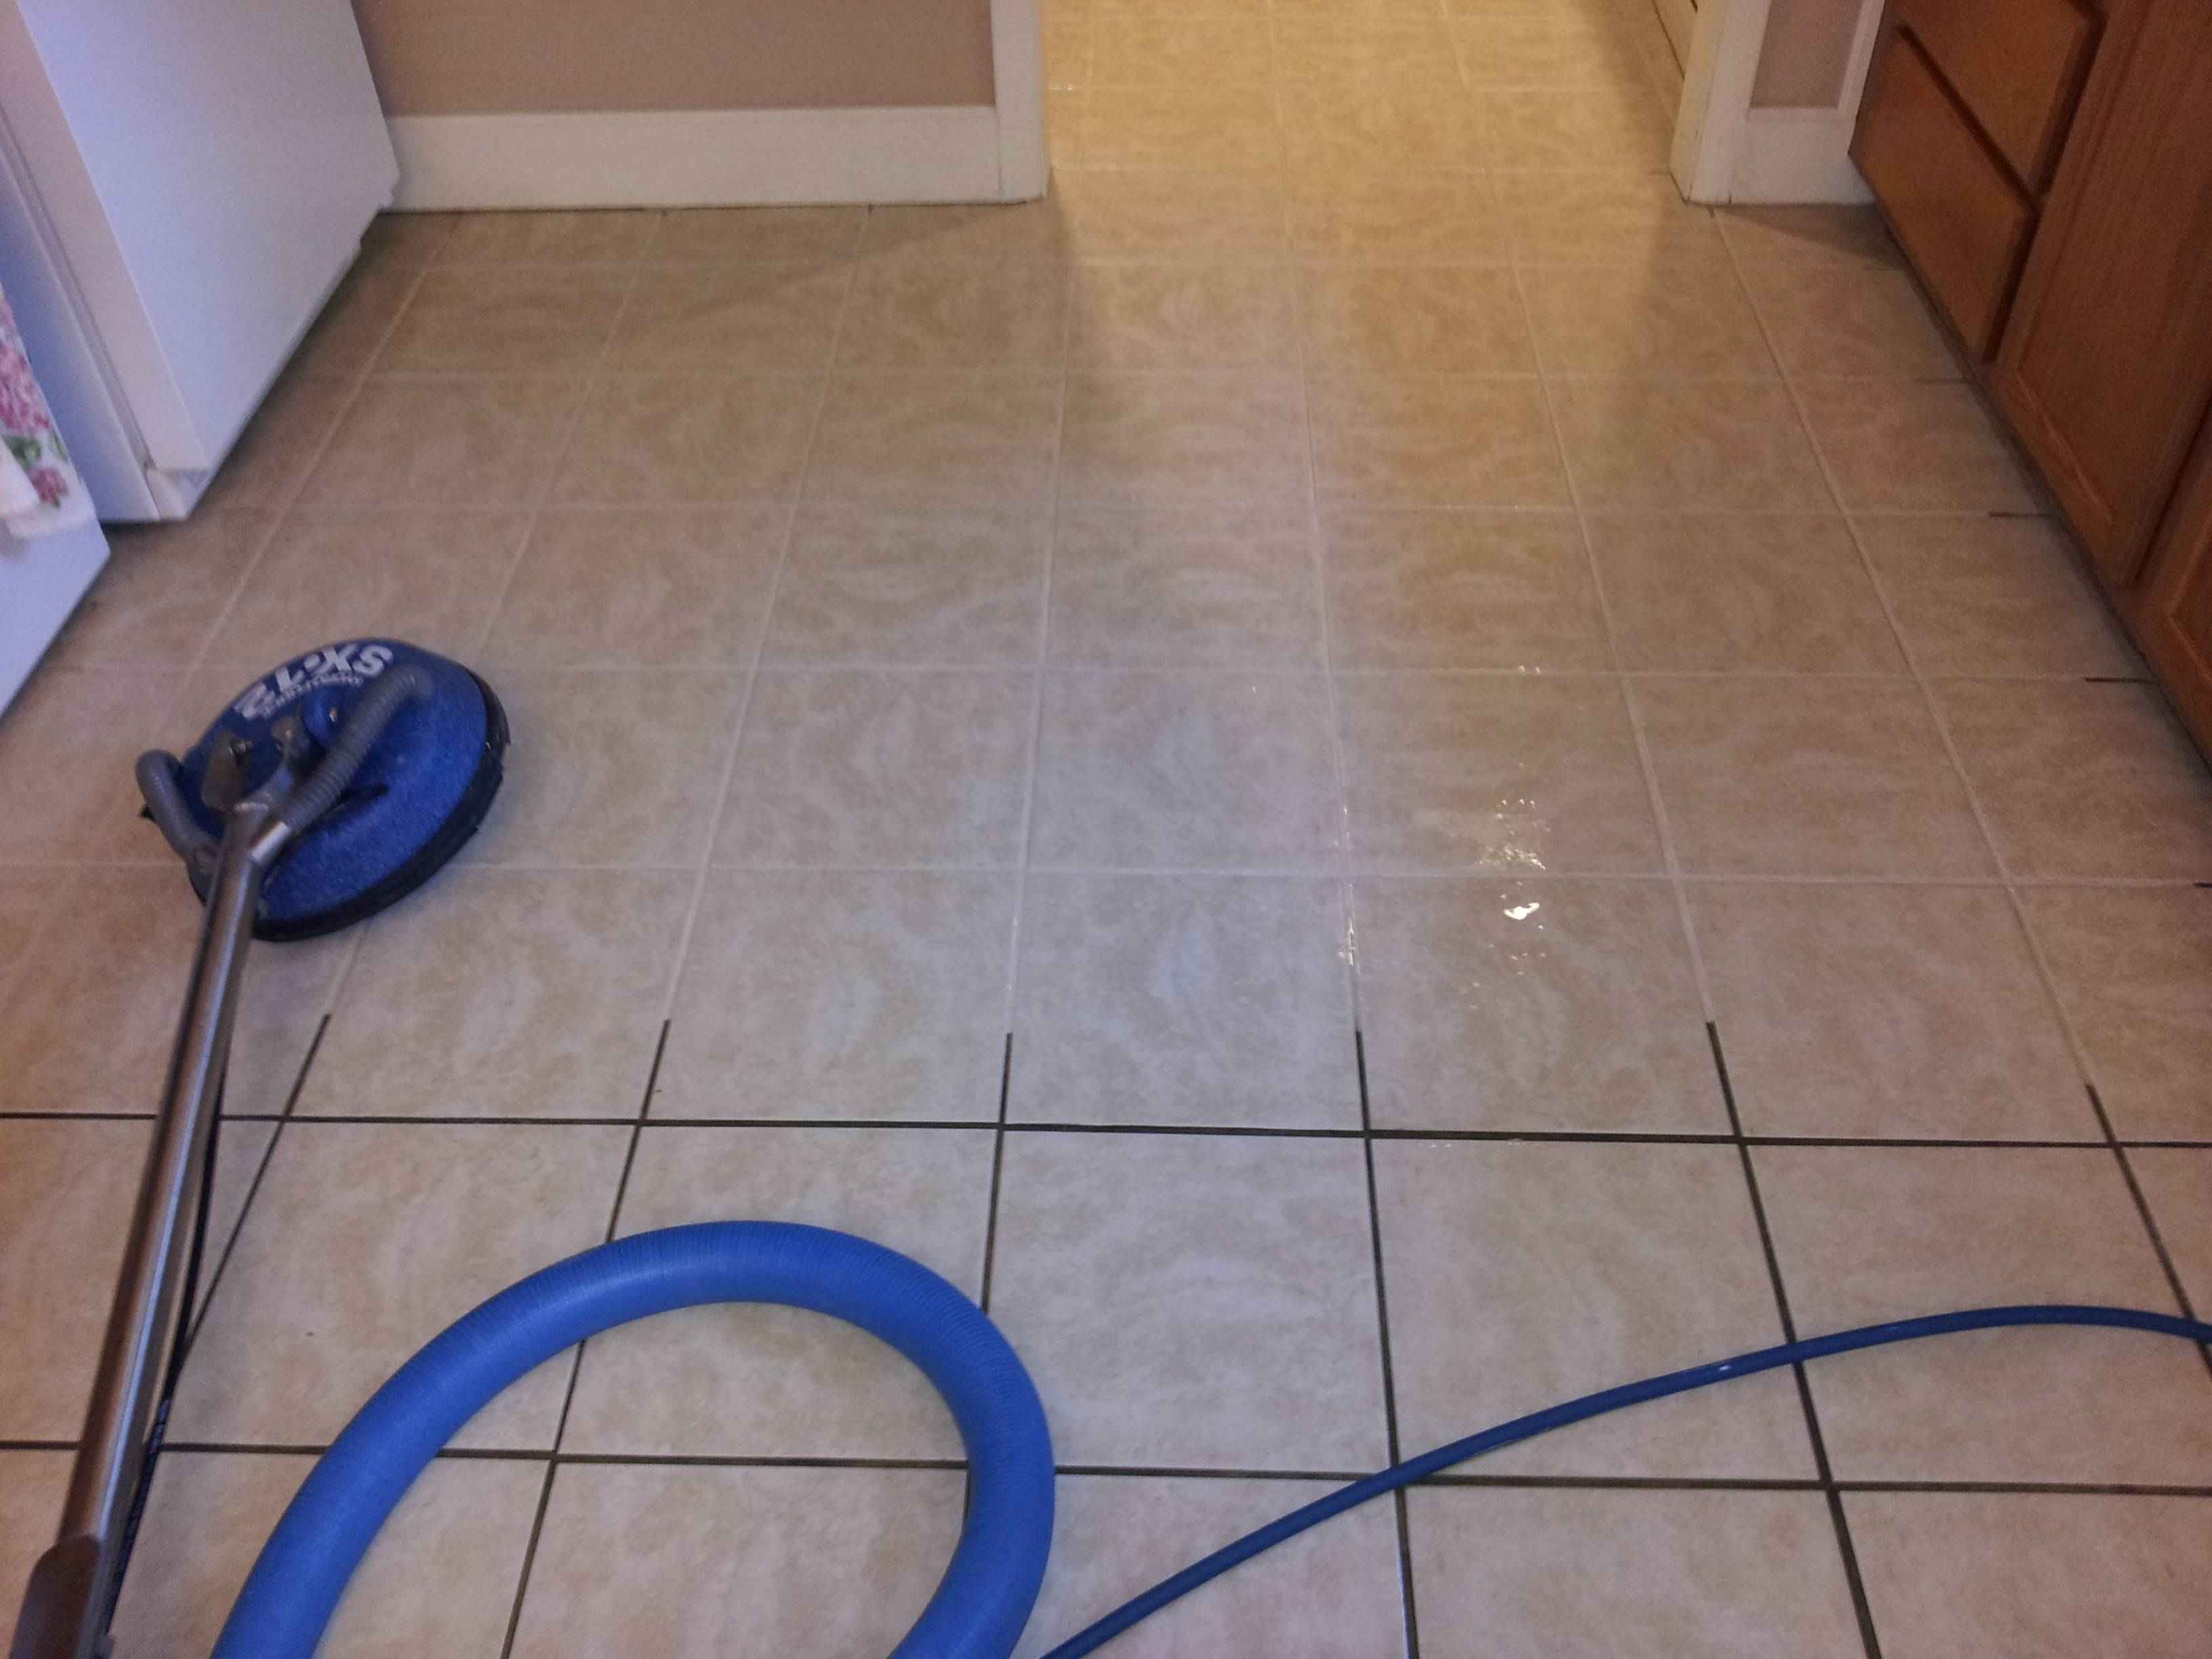 Tile and Grout Cleaning Hacks